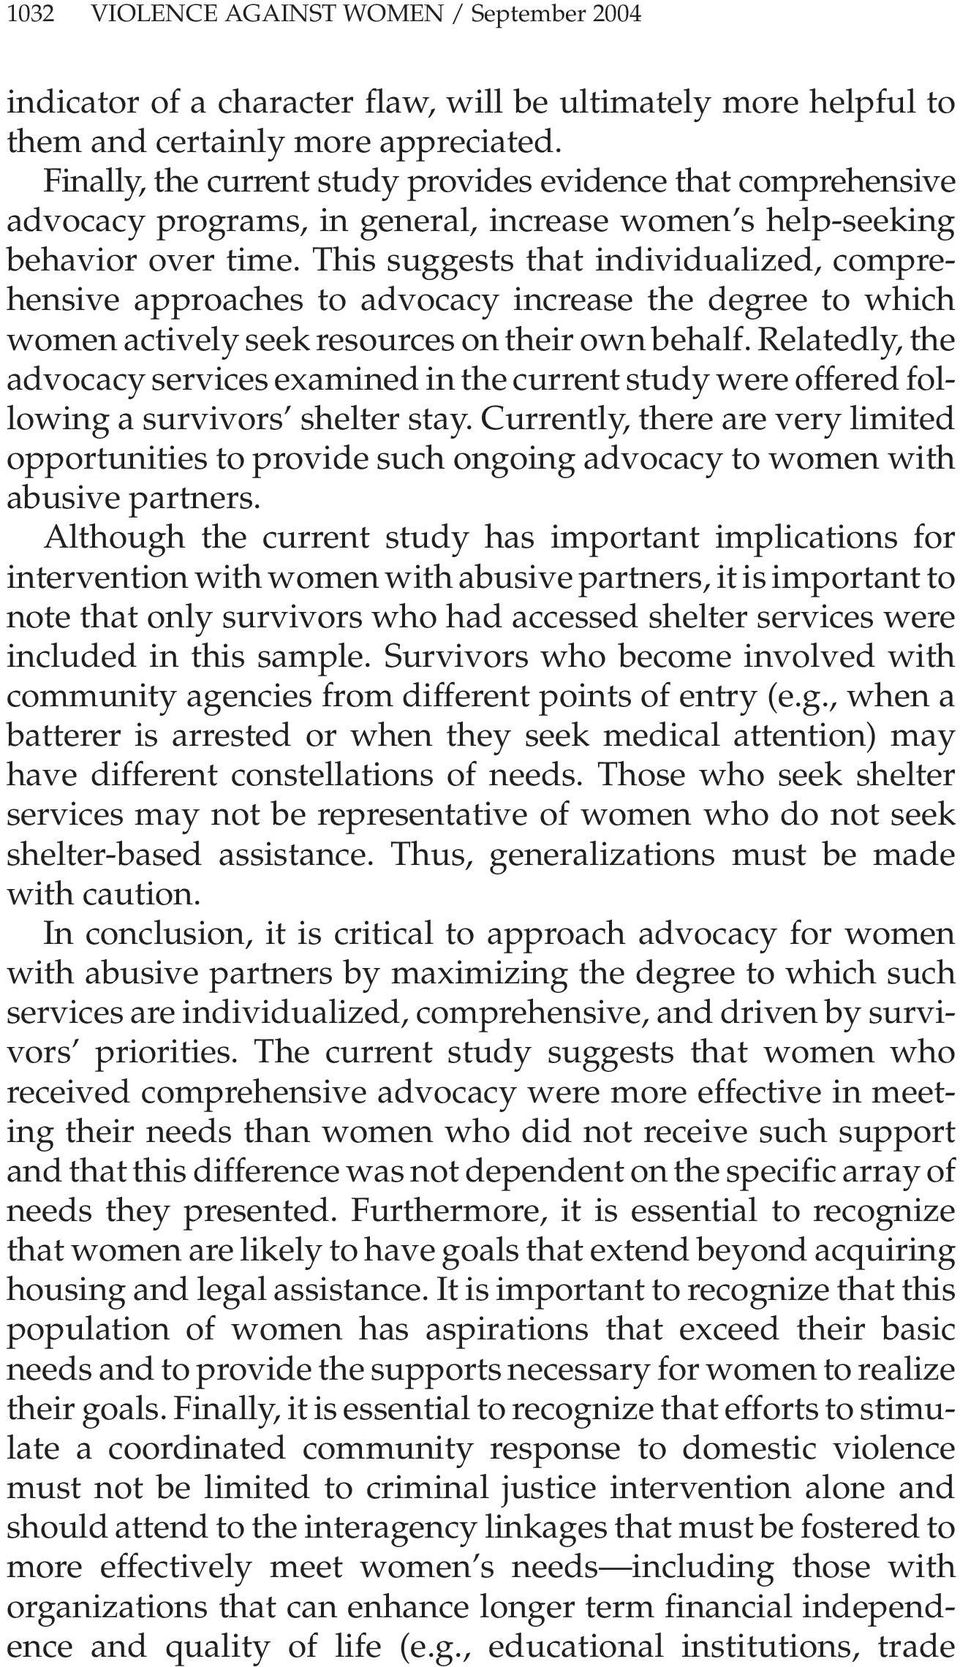 This suggests that individualized, comprehensive approaches to advocacy increase the degree to which women actively seek resources on their own behalf.